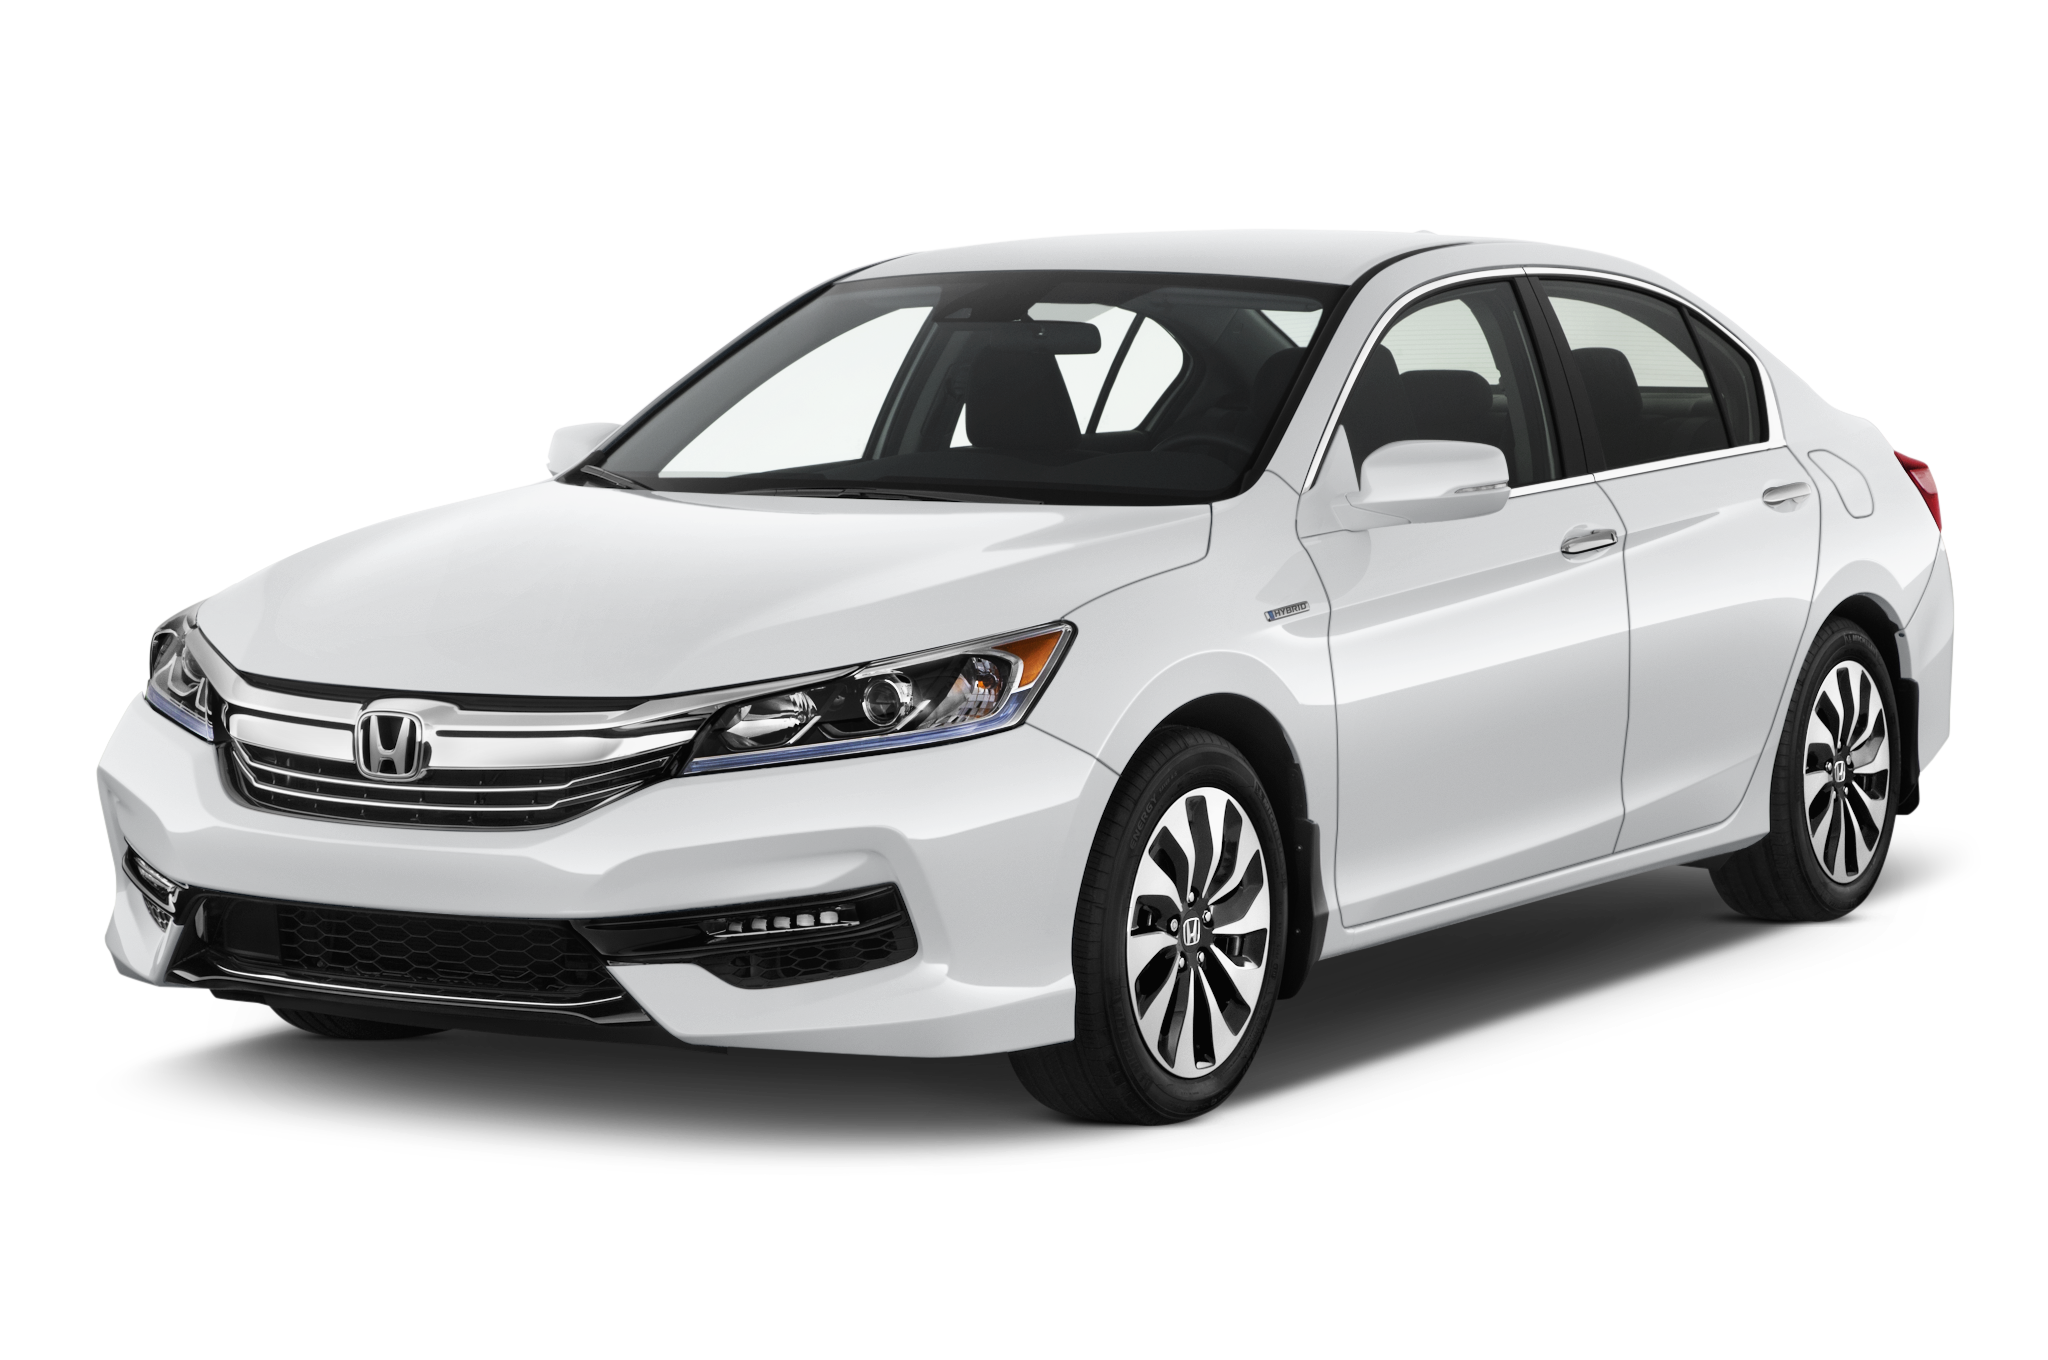 2017 Honda Accord Saloon https//www.reconditionengines.co